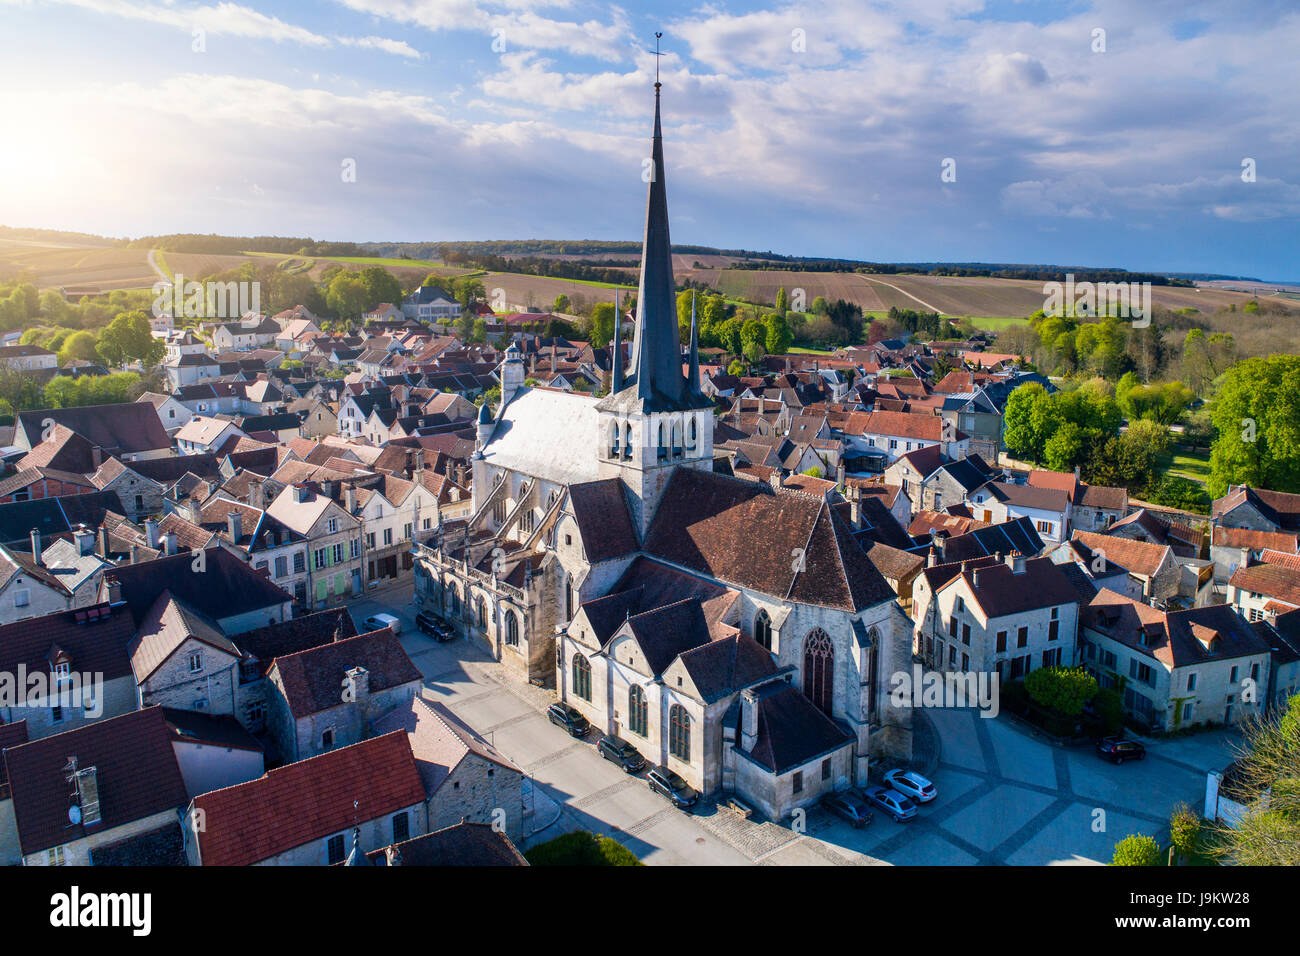 France, Aube (10), Vue aerienne du village des Riceys//France, Aube (10), Aerial view of Les Riceys - Stock Image